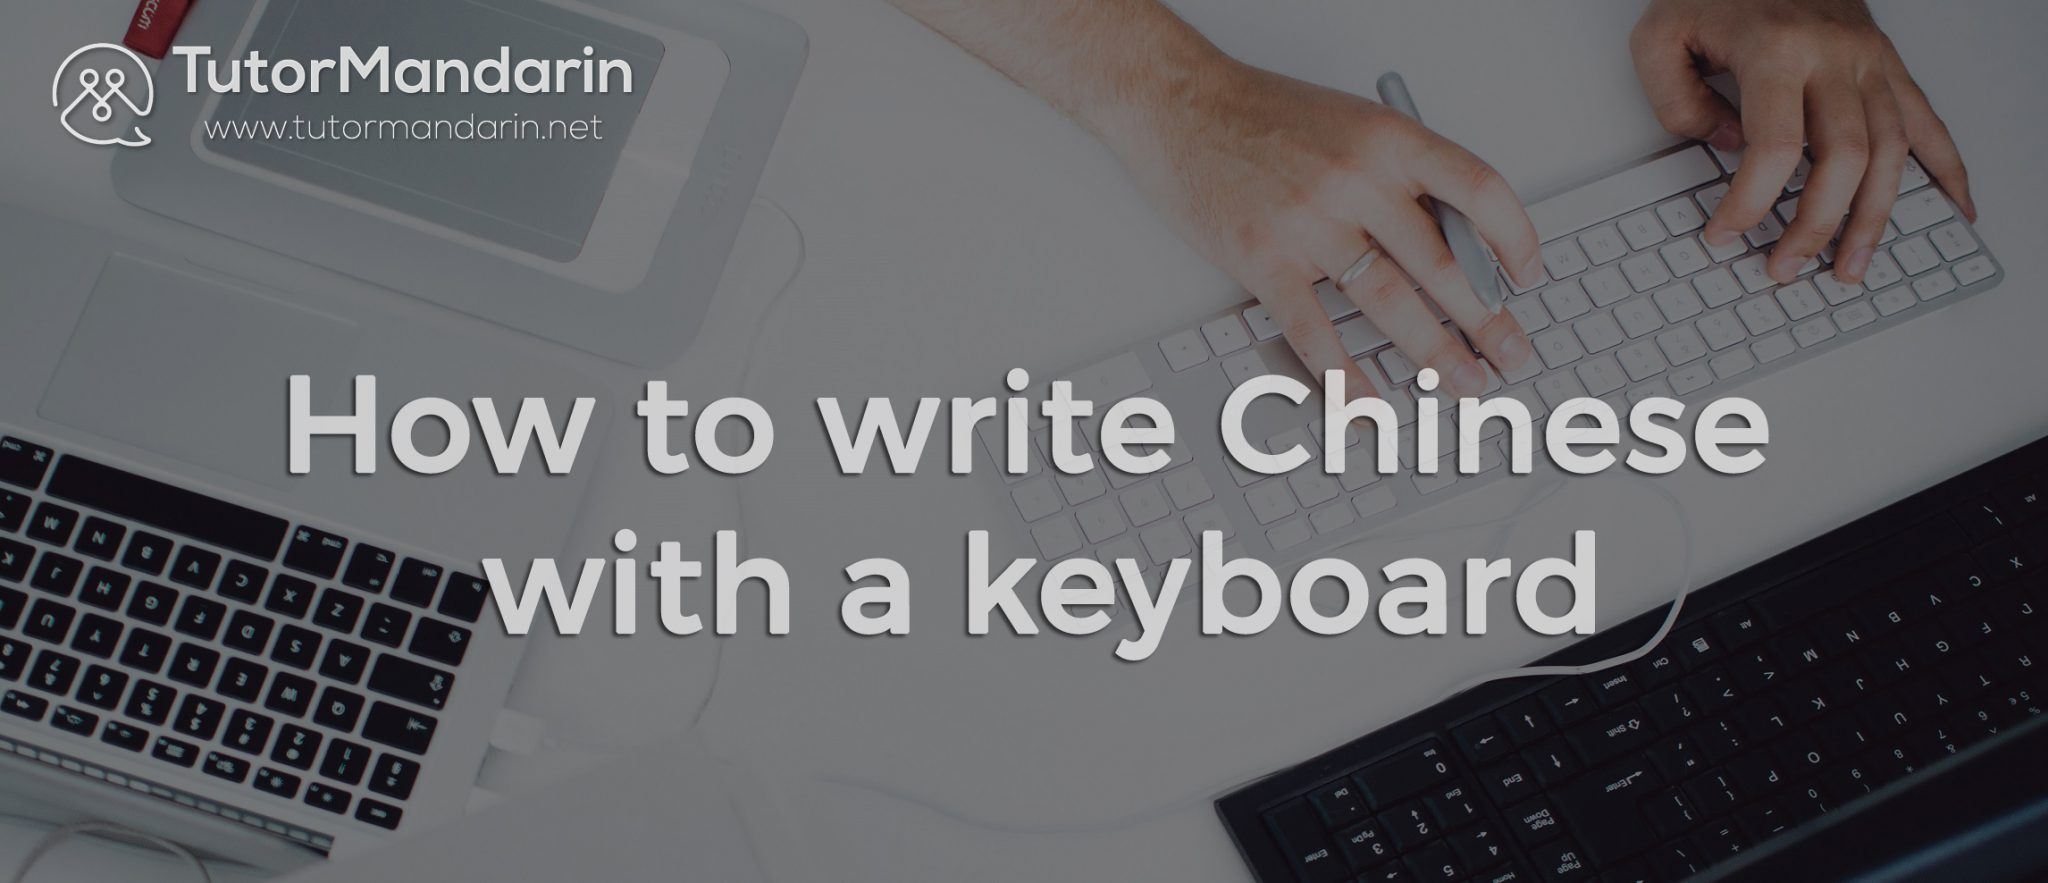 How do you type Chinese characters on a keyboard